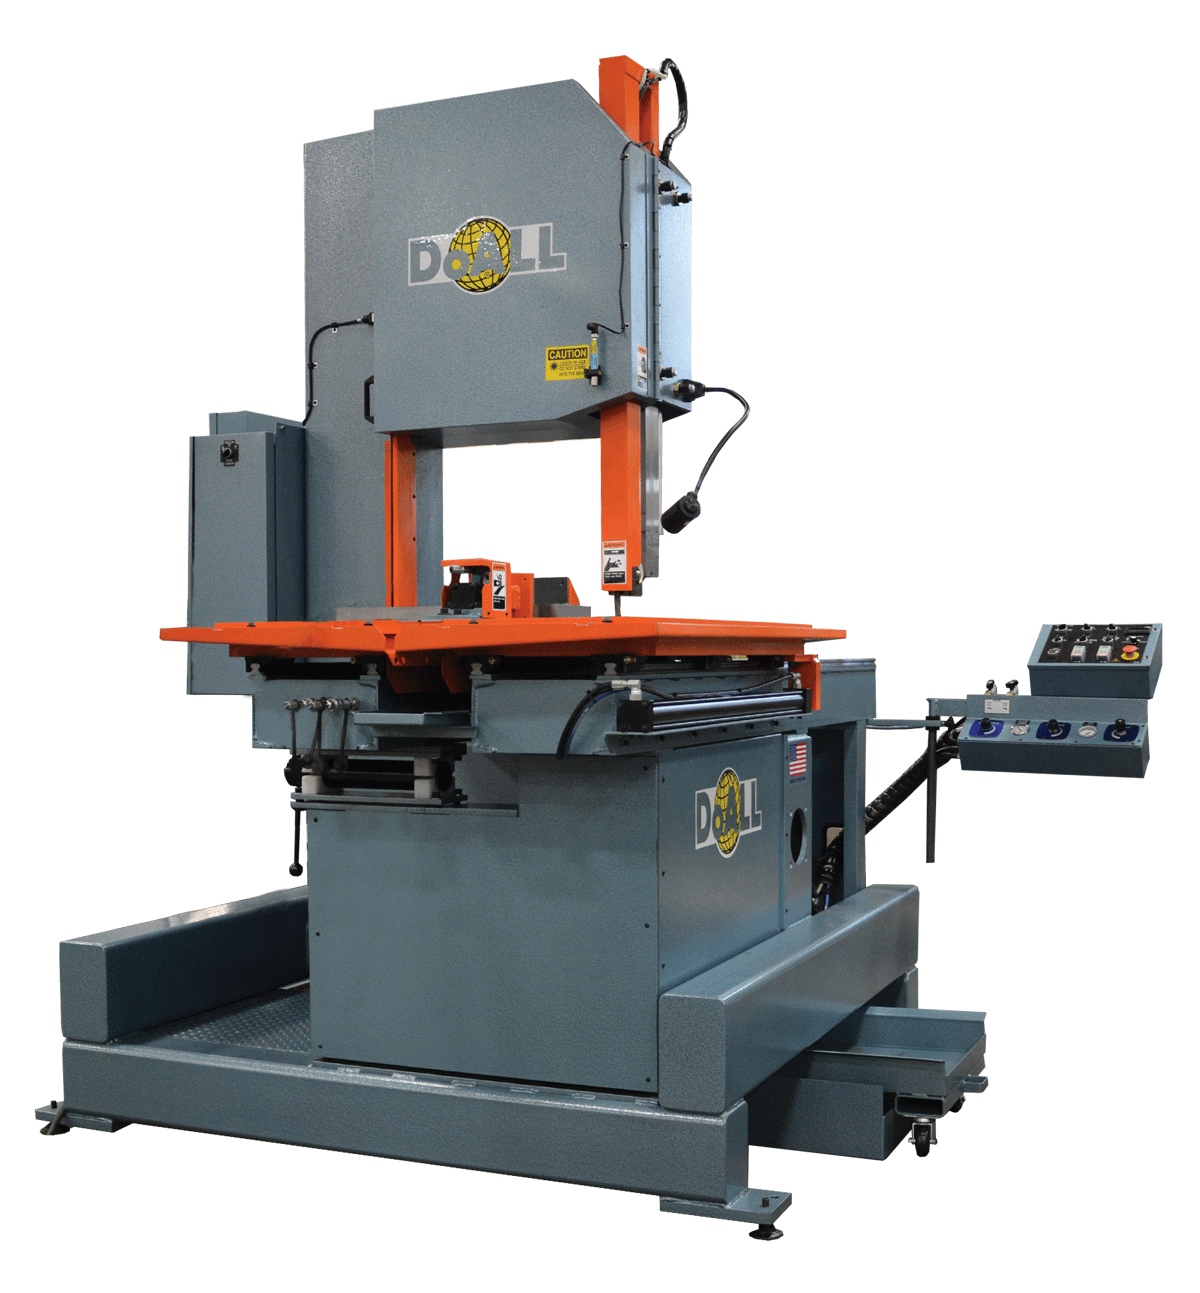 Band saw png. High production saws industrial